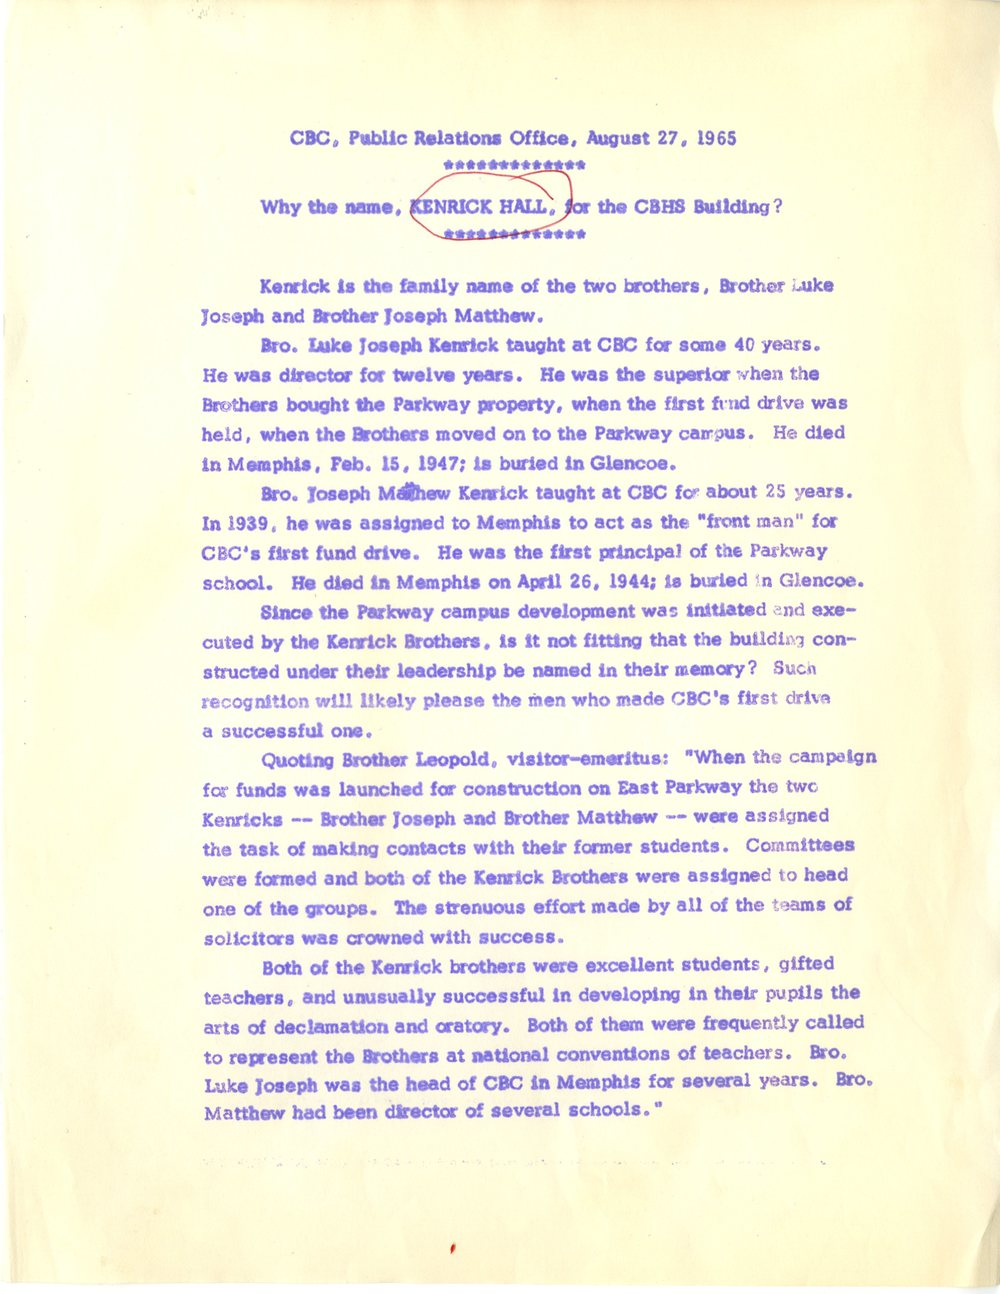 1969 press release about the Kenrick name.jpg